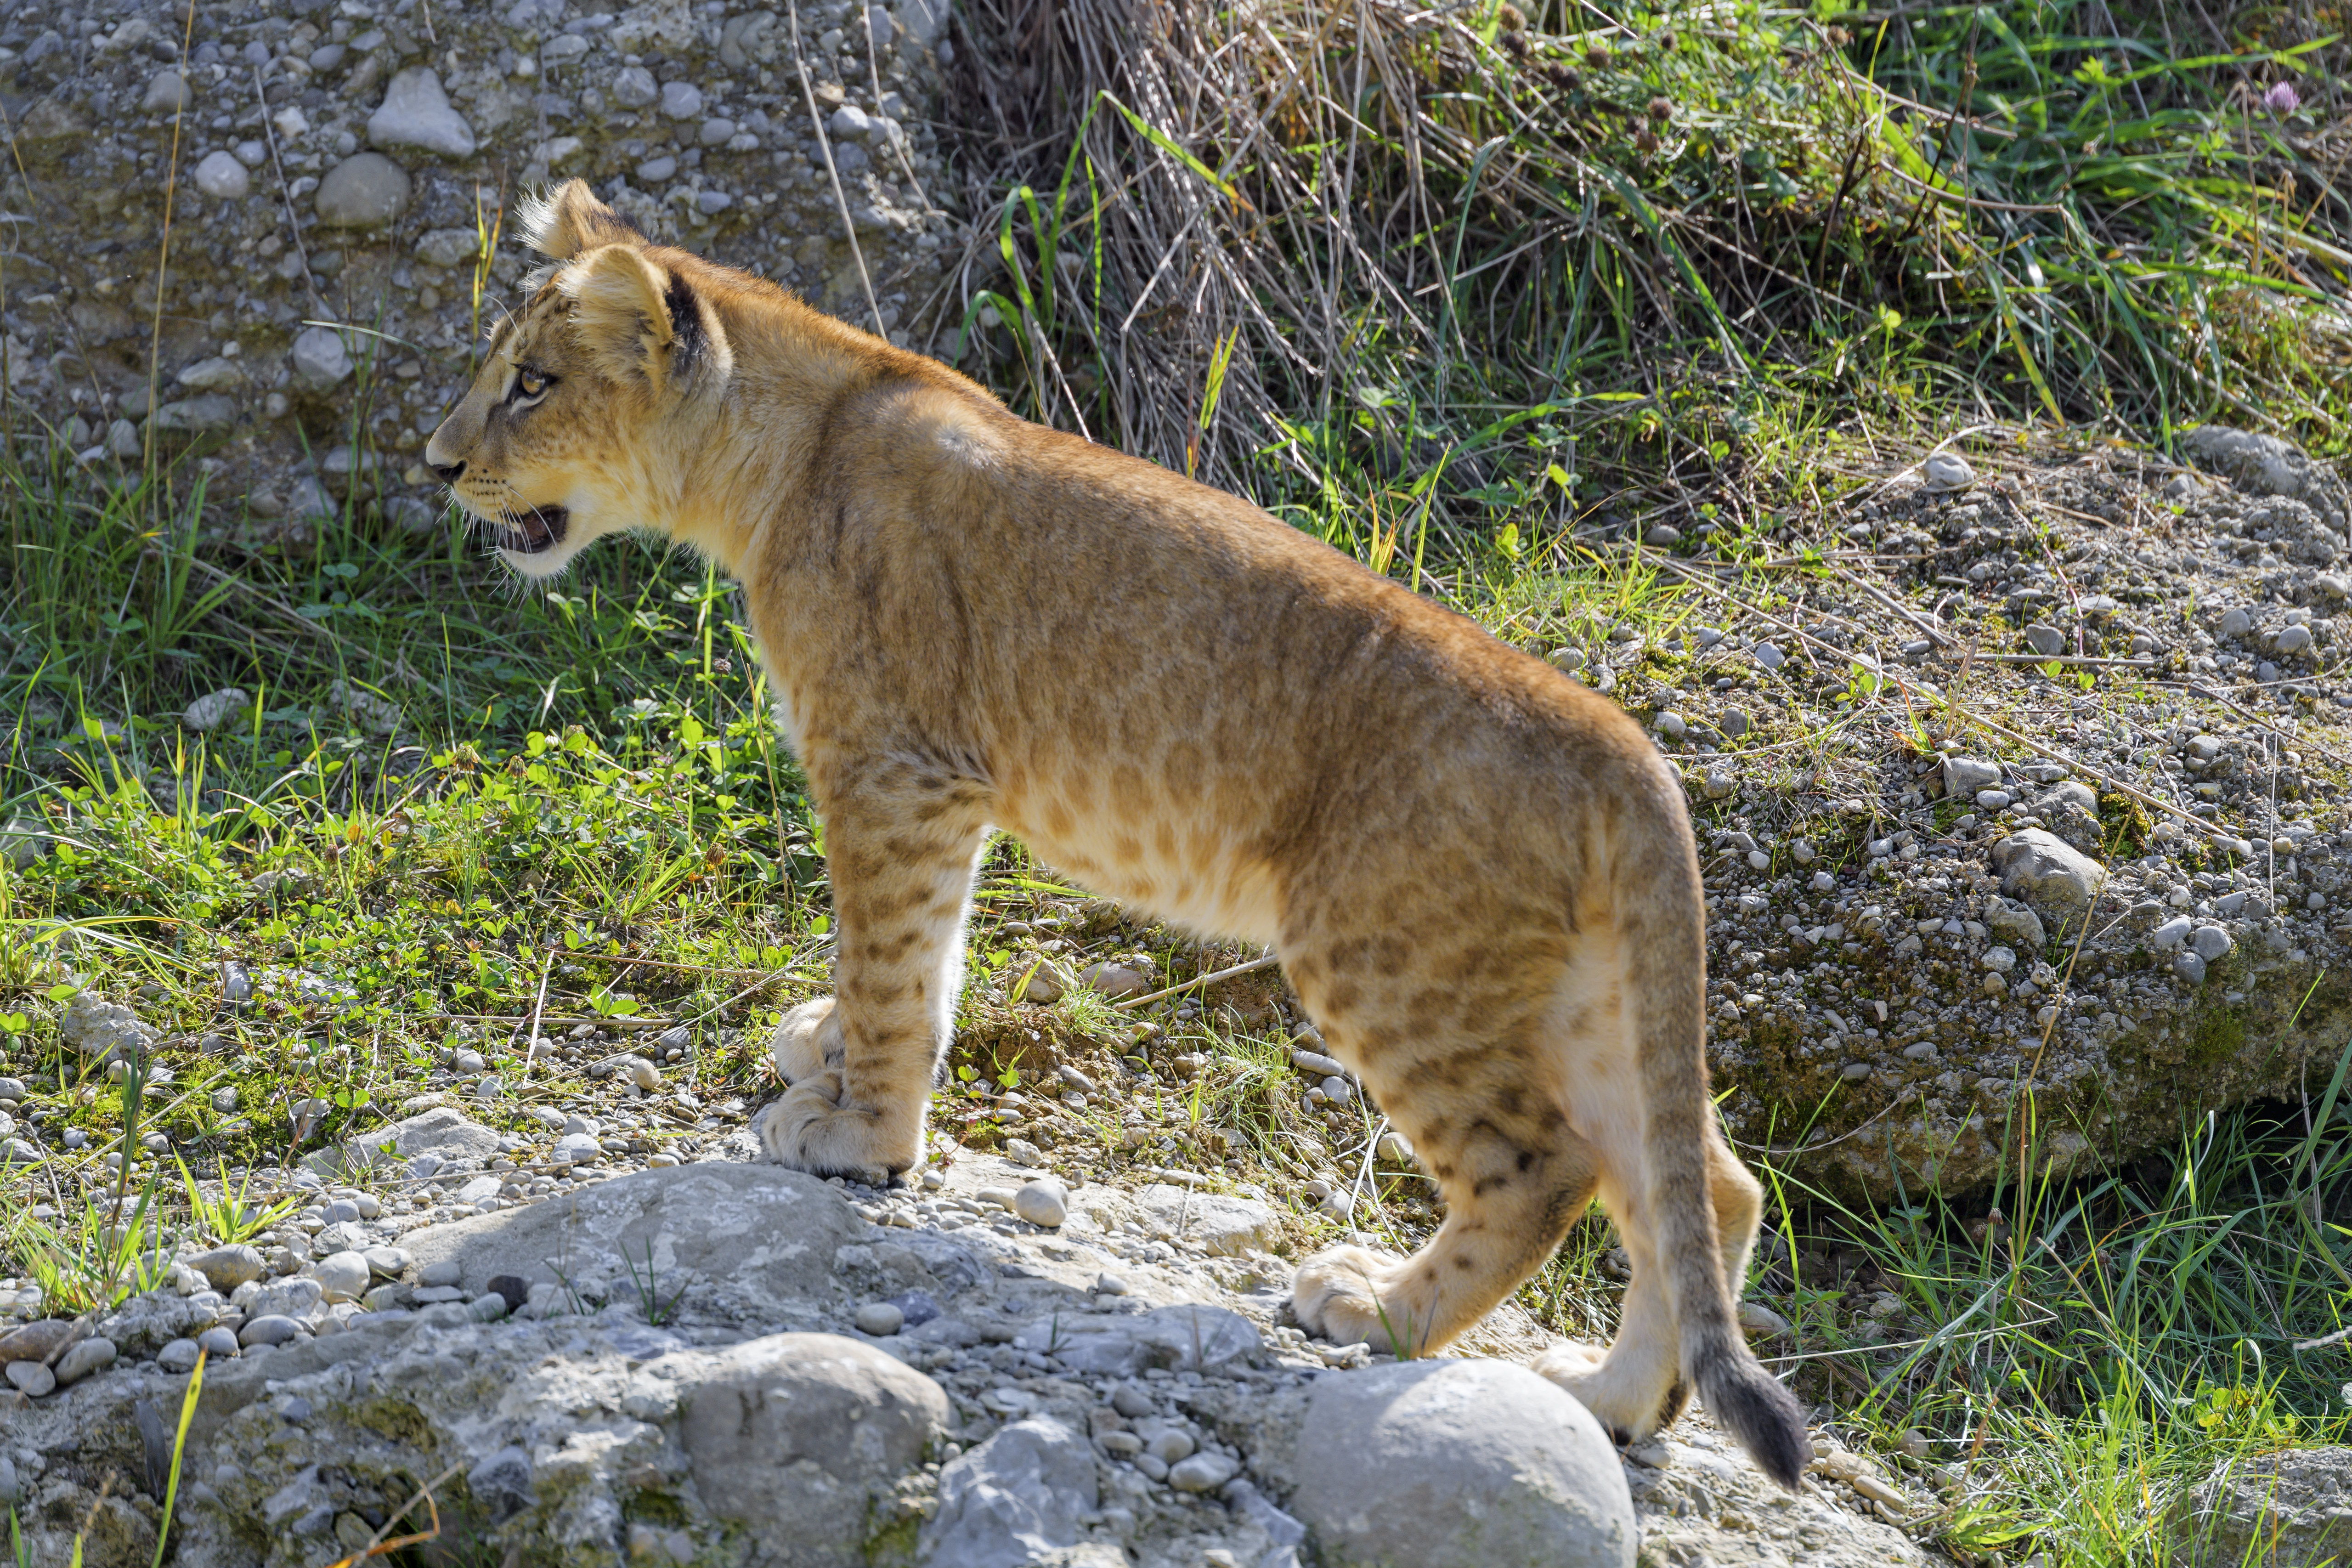 107240 download wallpaper Animals, Lioness, Big Cat, Sight, Opinion, Predator, Profile screensavers and pictures for free